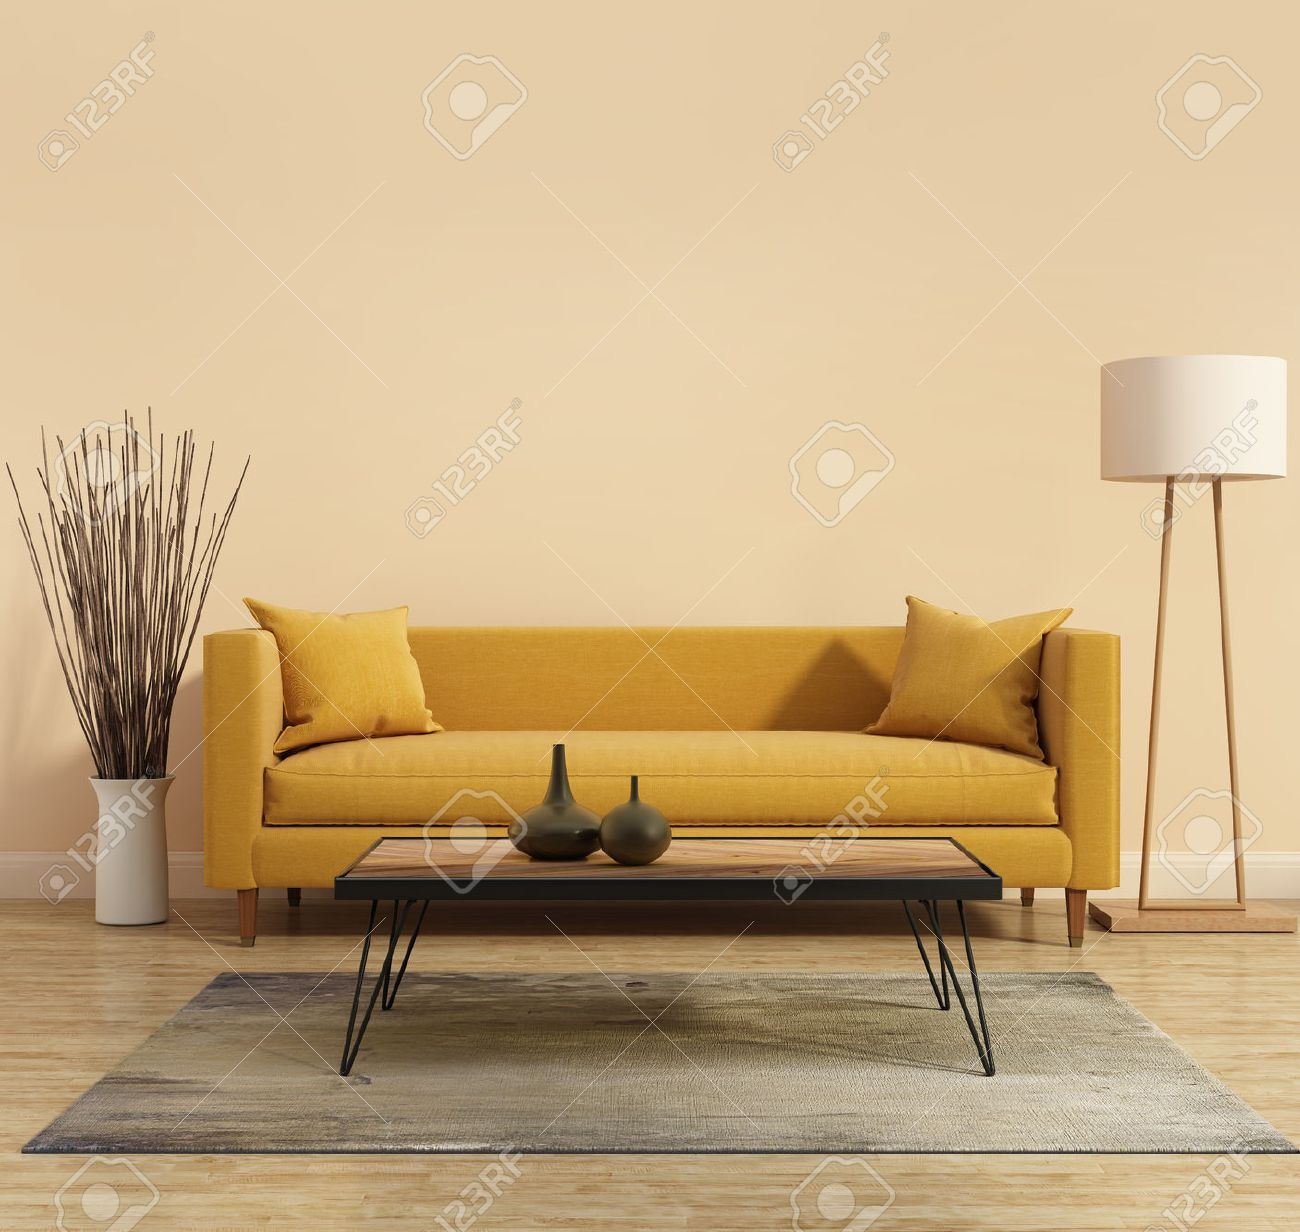 Beautiful Modern Interior With A Yellow Sofa In The Living Room Stock Photo   37935067